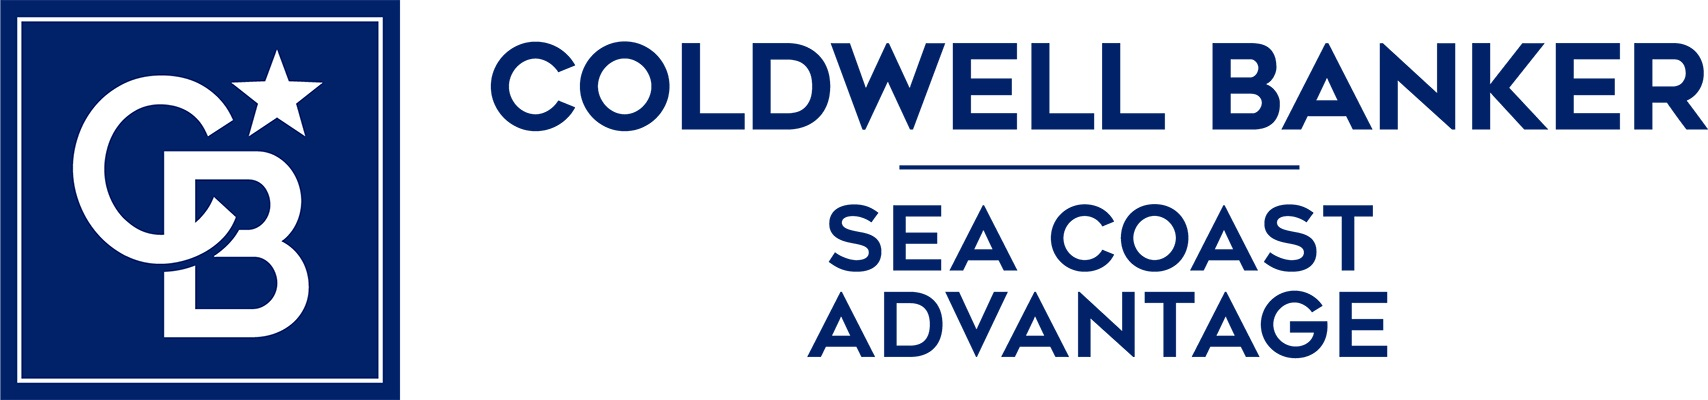 Maria Smith - Coldwell Banker Sea Coast Advantage Realty Logo